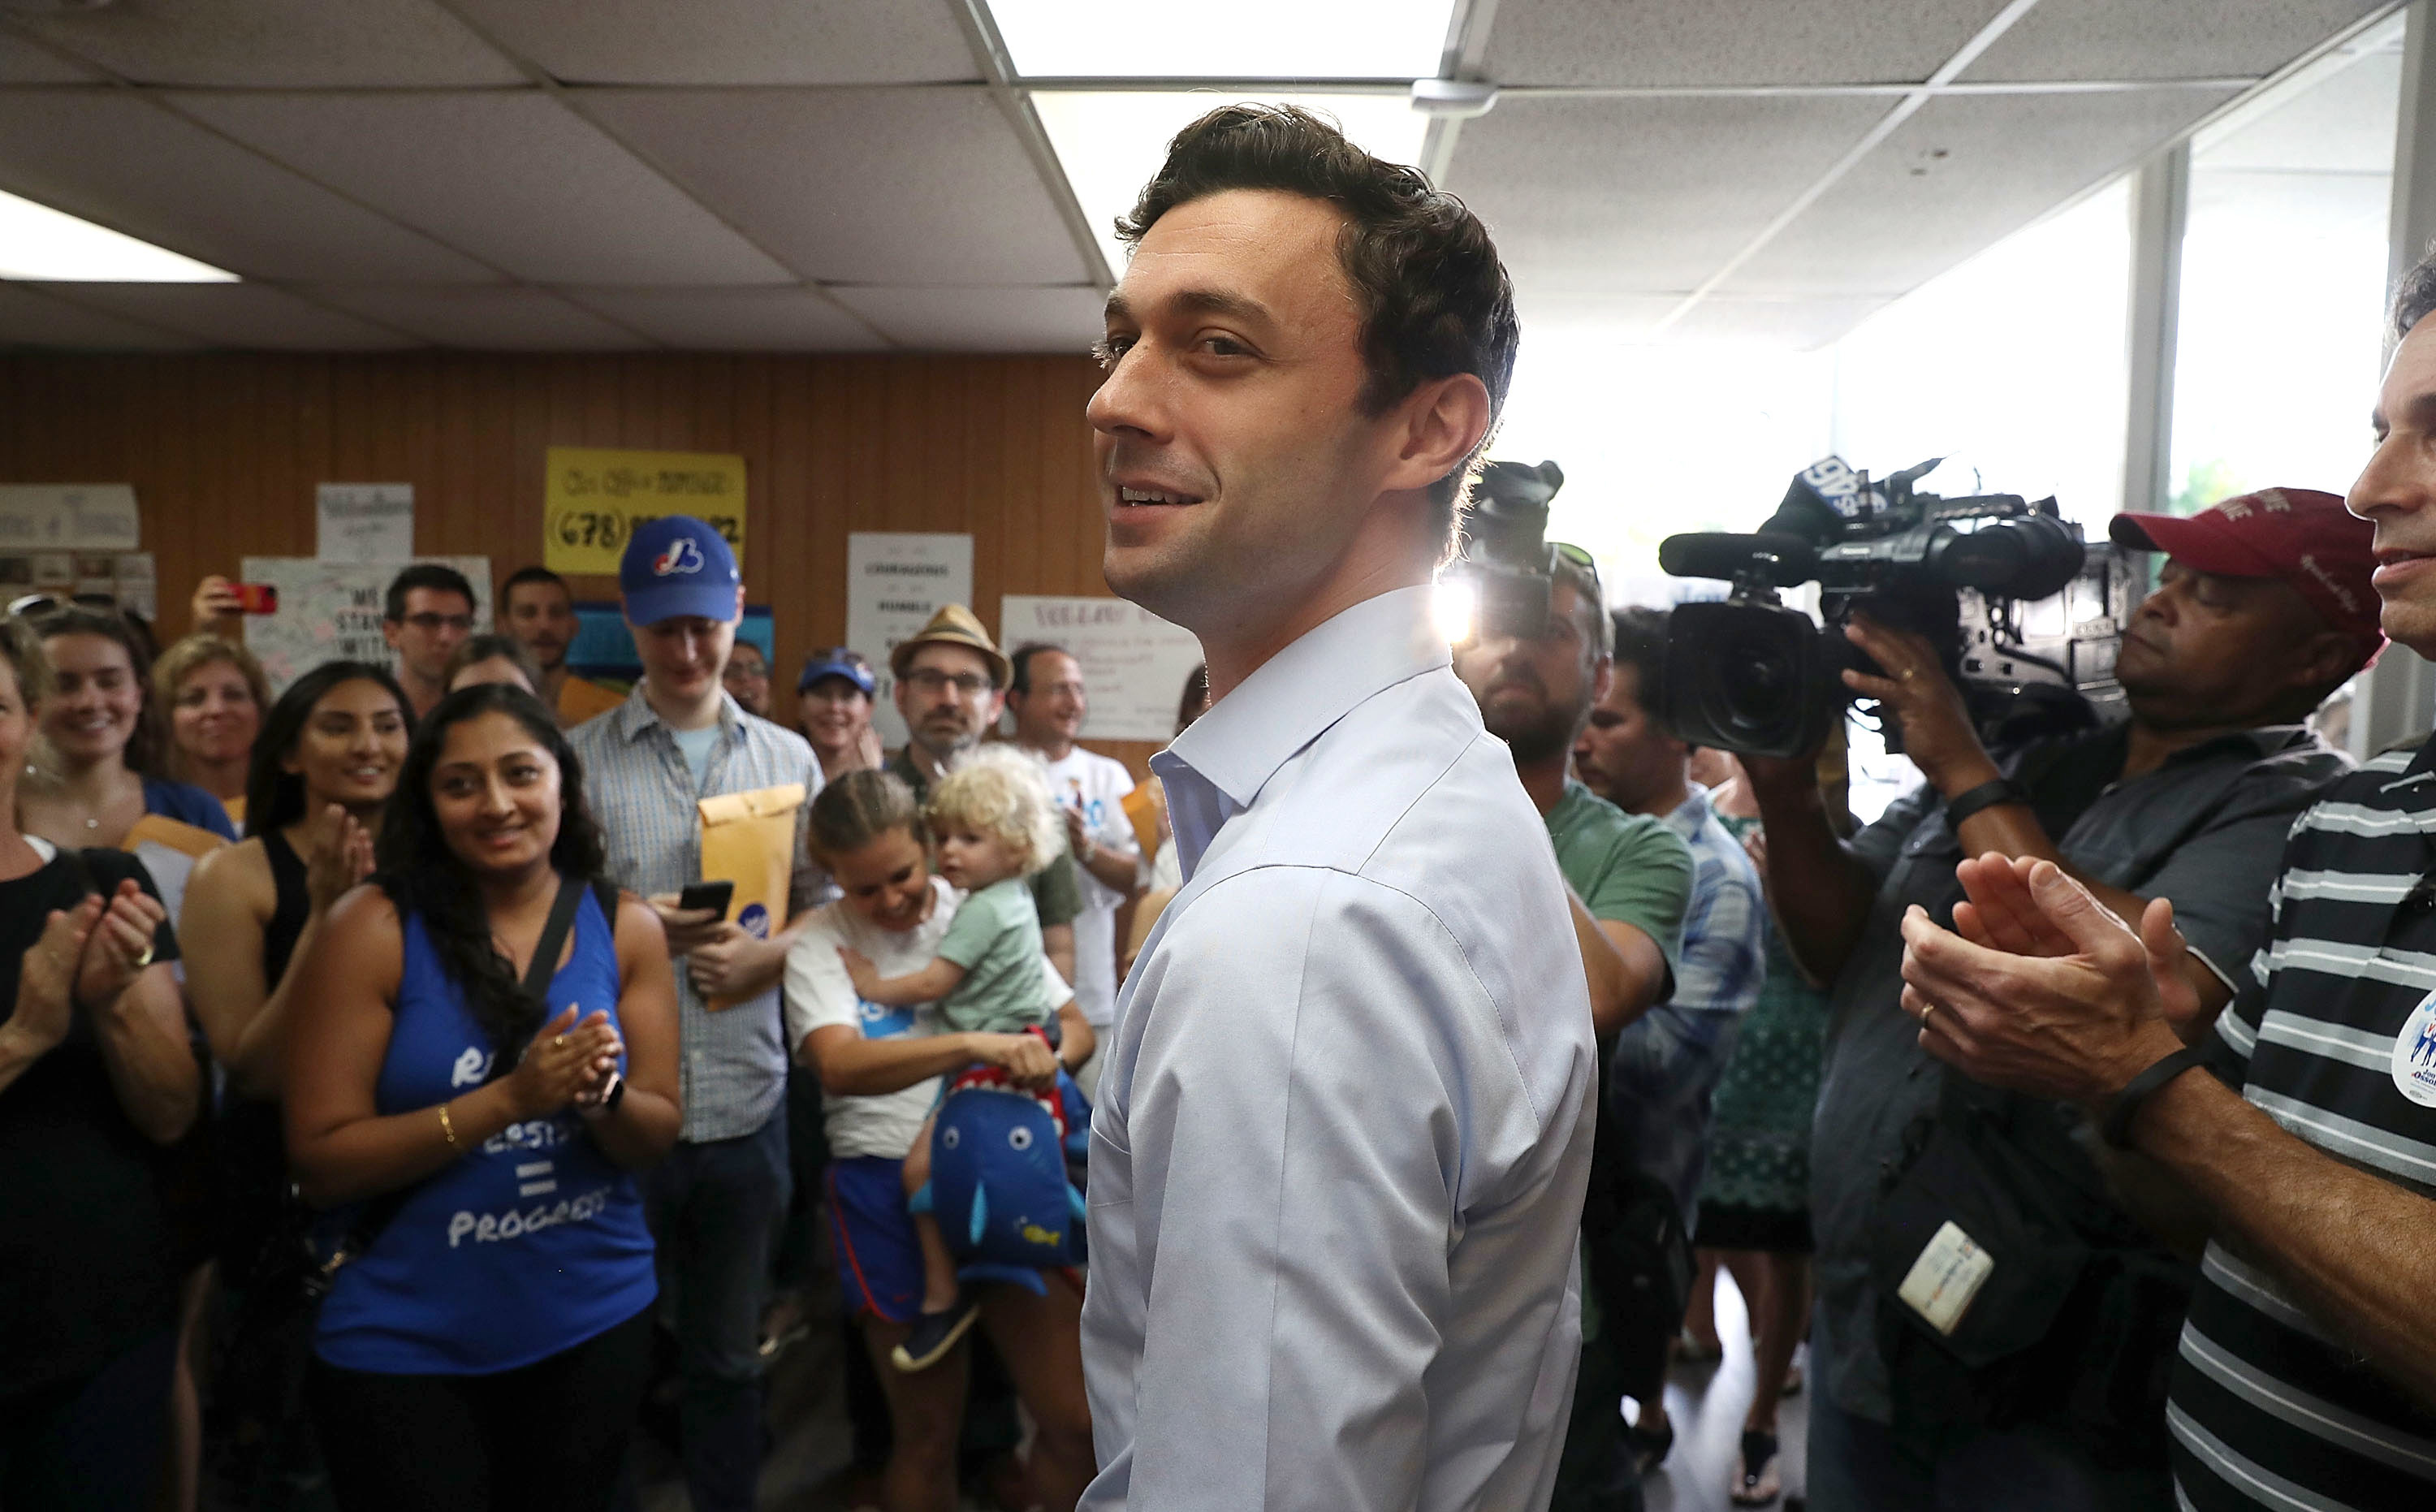 Democratic Candidate Jon Ossoff Visits A Campaign Office In Chamblee, Ga,  To Thank Volunteers And Supporters On Monday, As The Special Election For